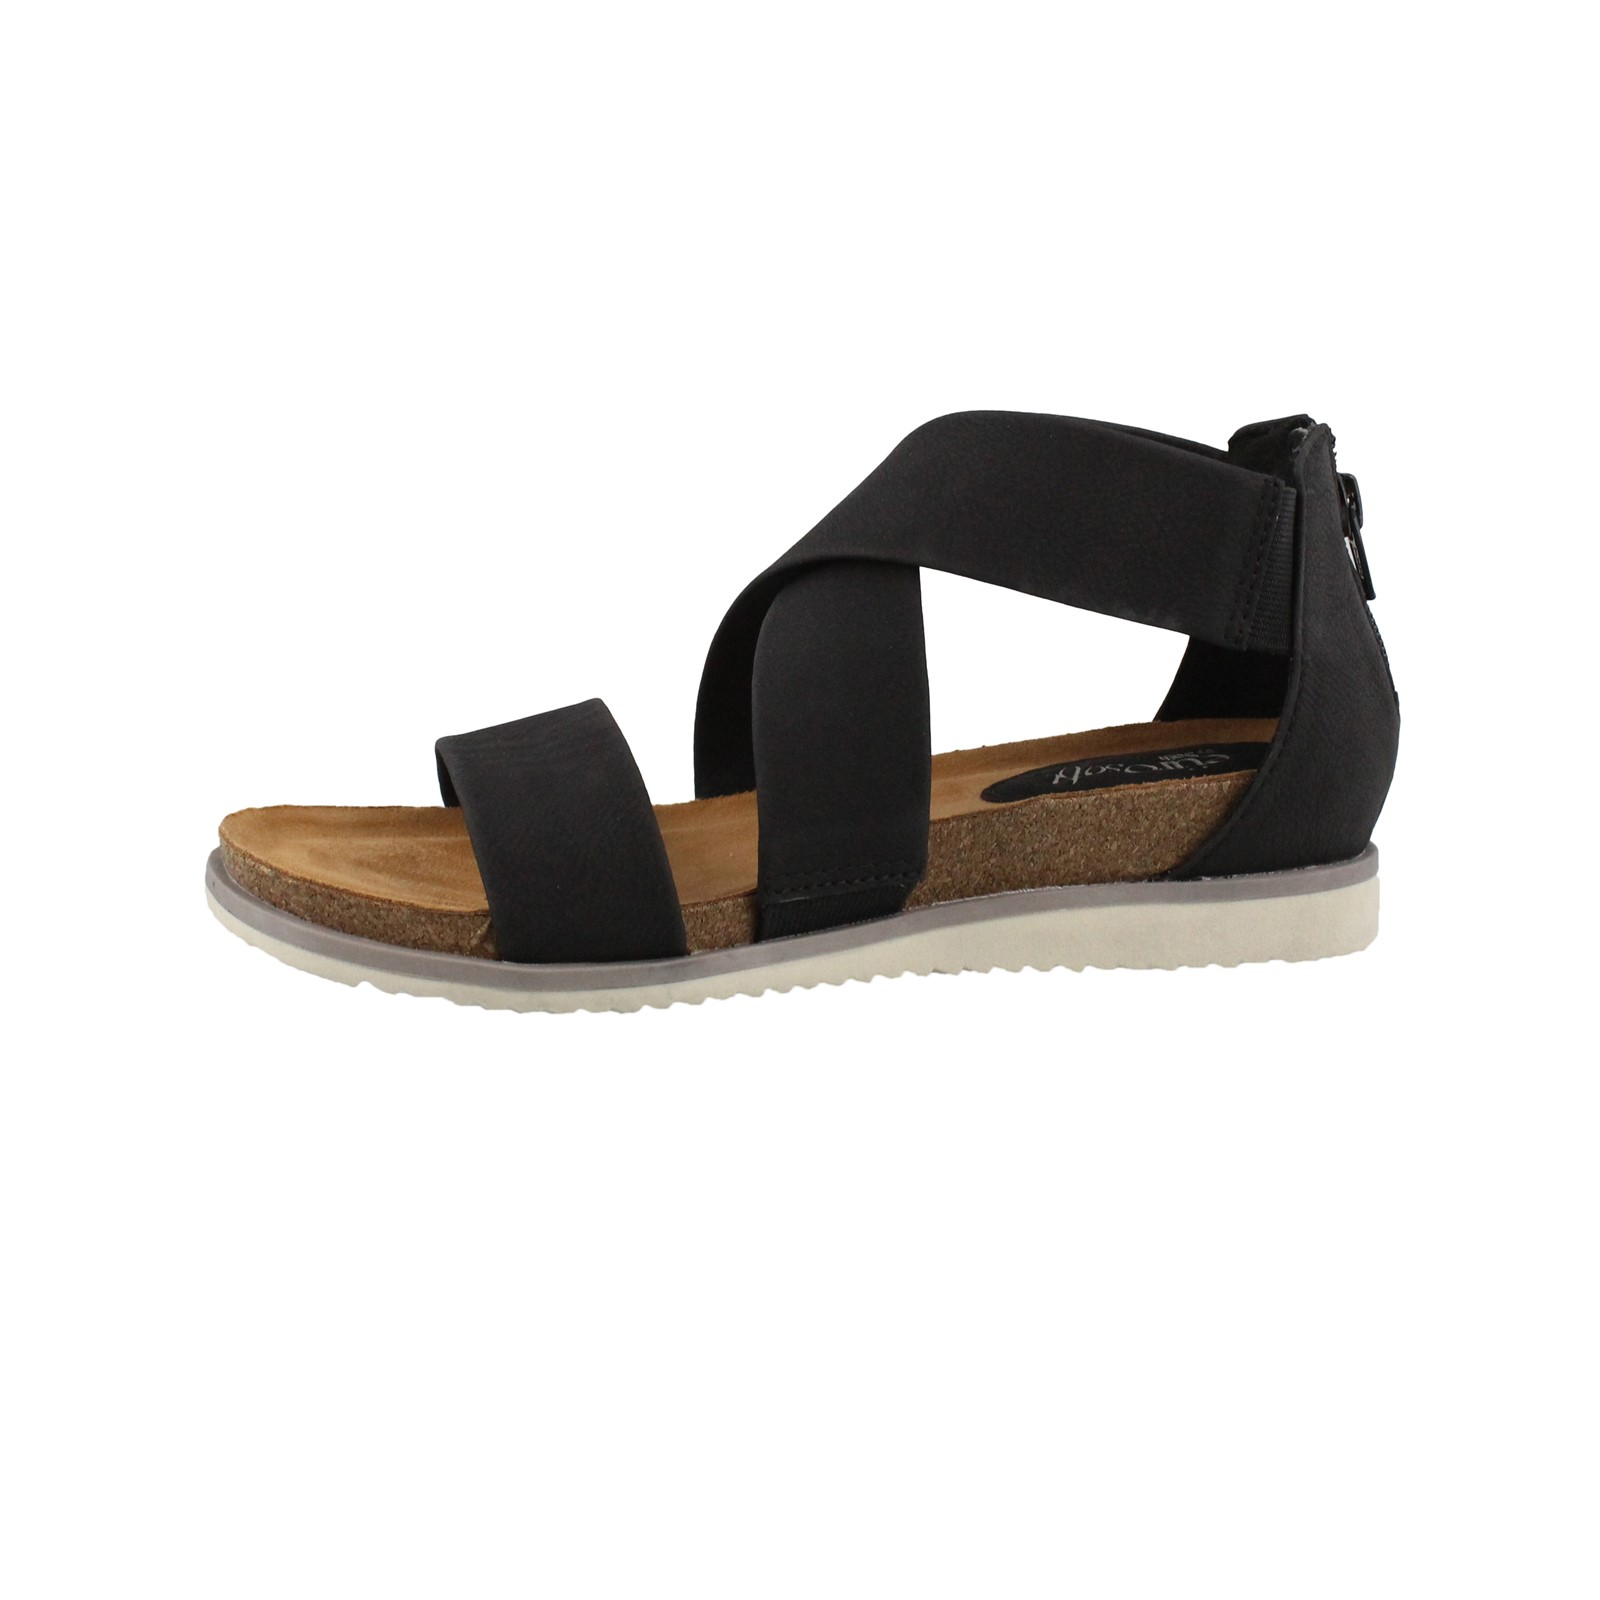 1da118e49 Next. add to favorites. Women's Eurosoft by Sofft, Landry II casual Sandals